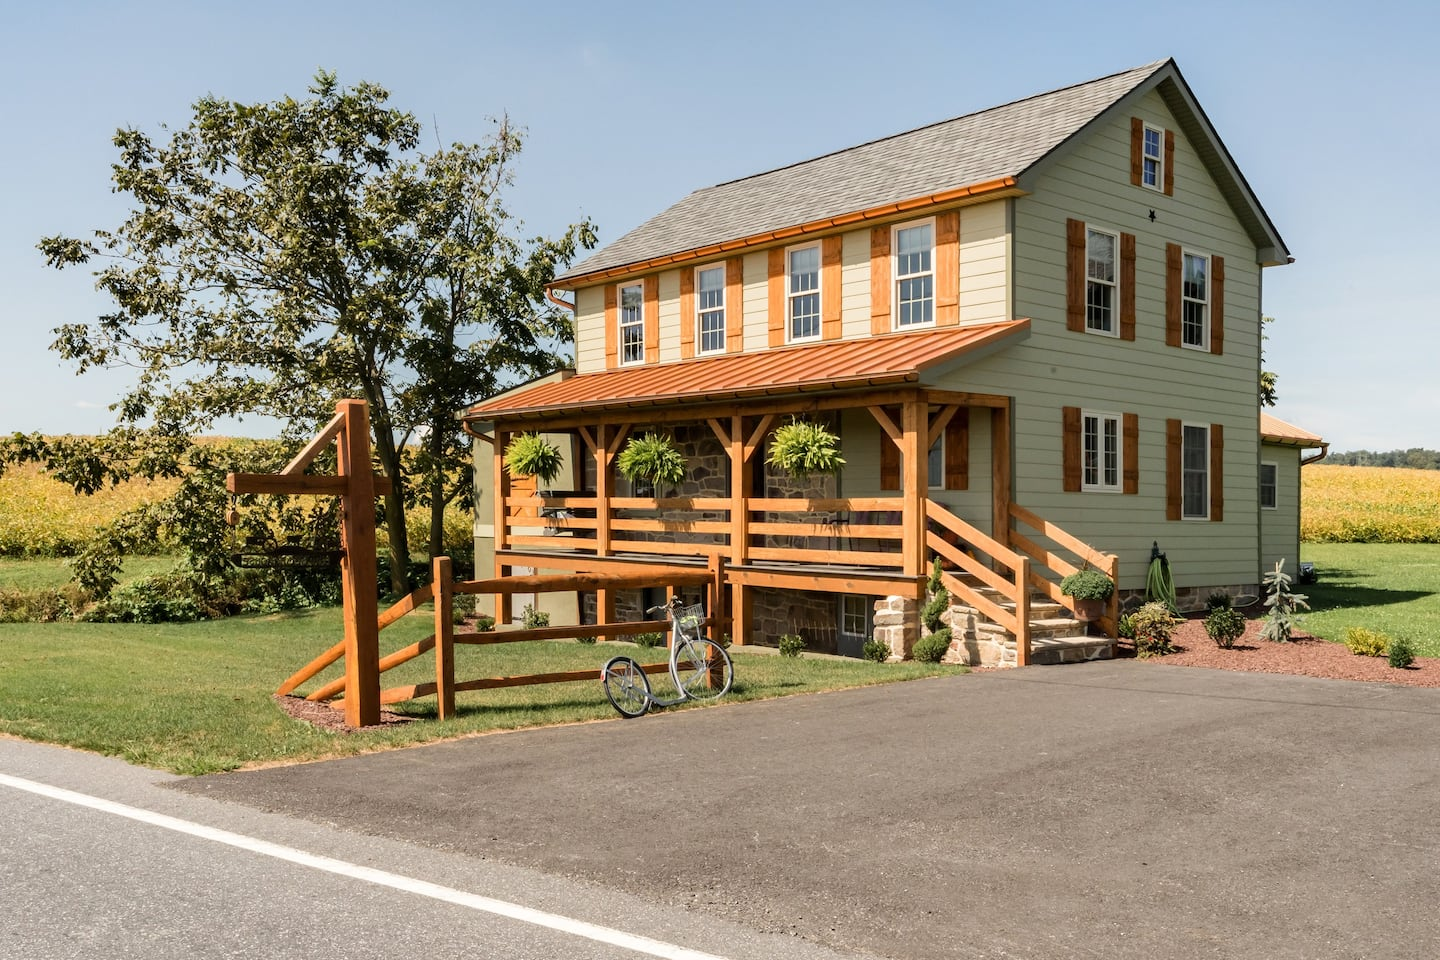 Luxury Airbnb in Pennsylvania For Large Groups